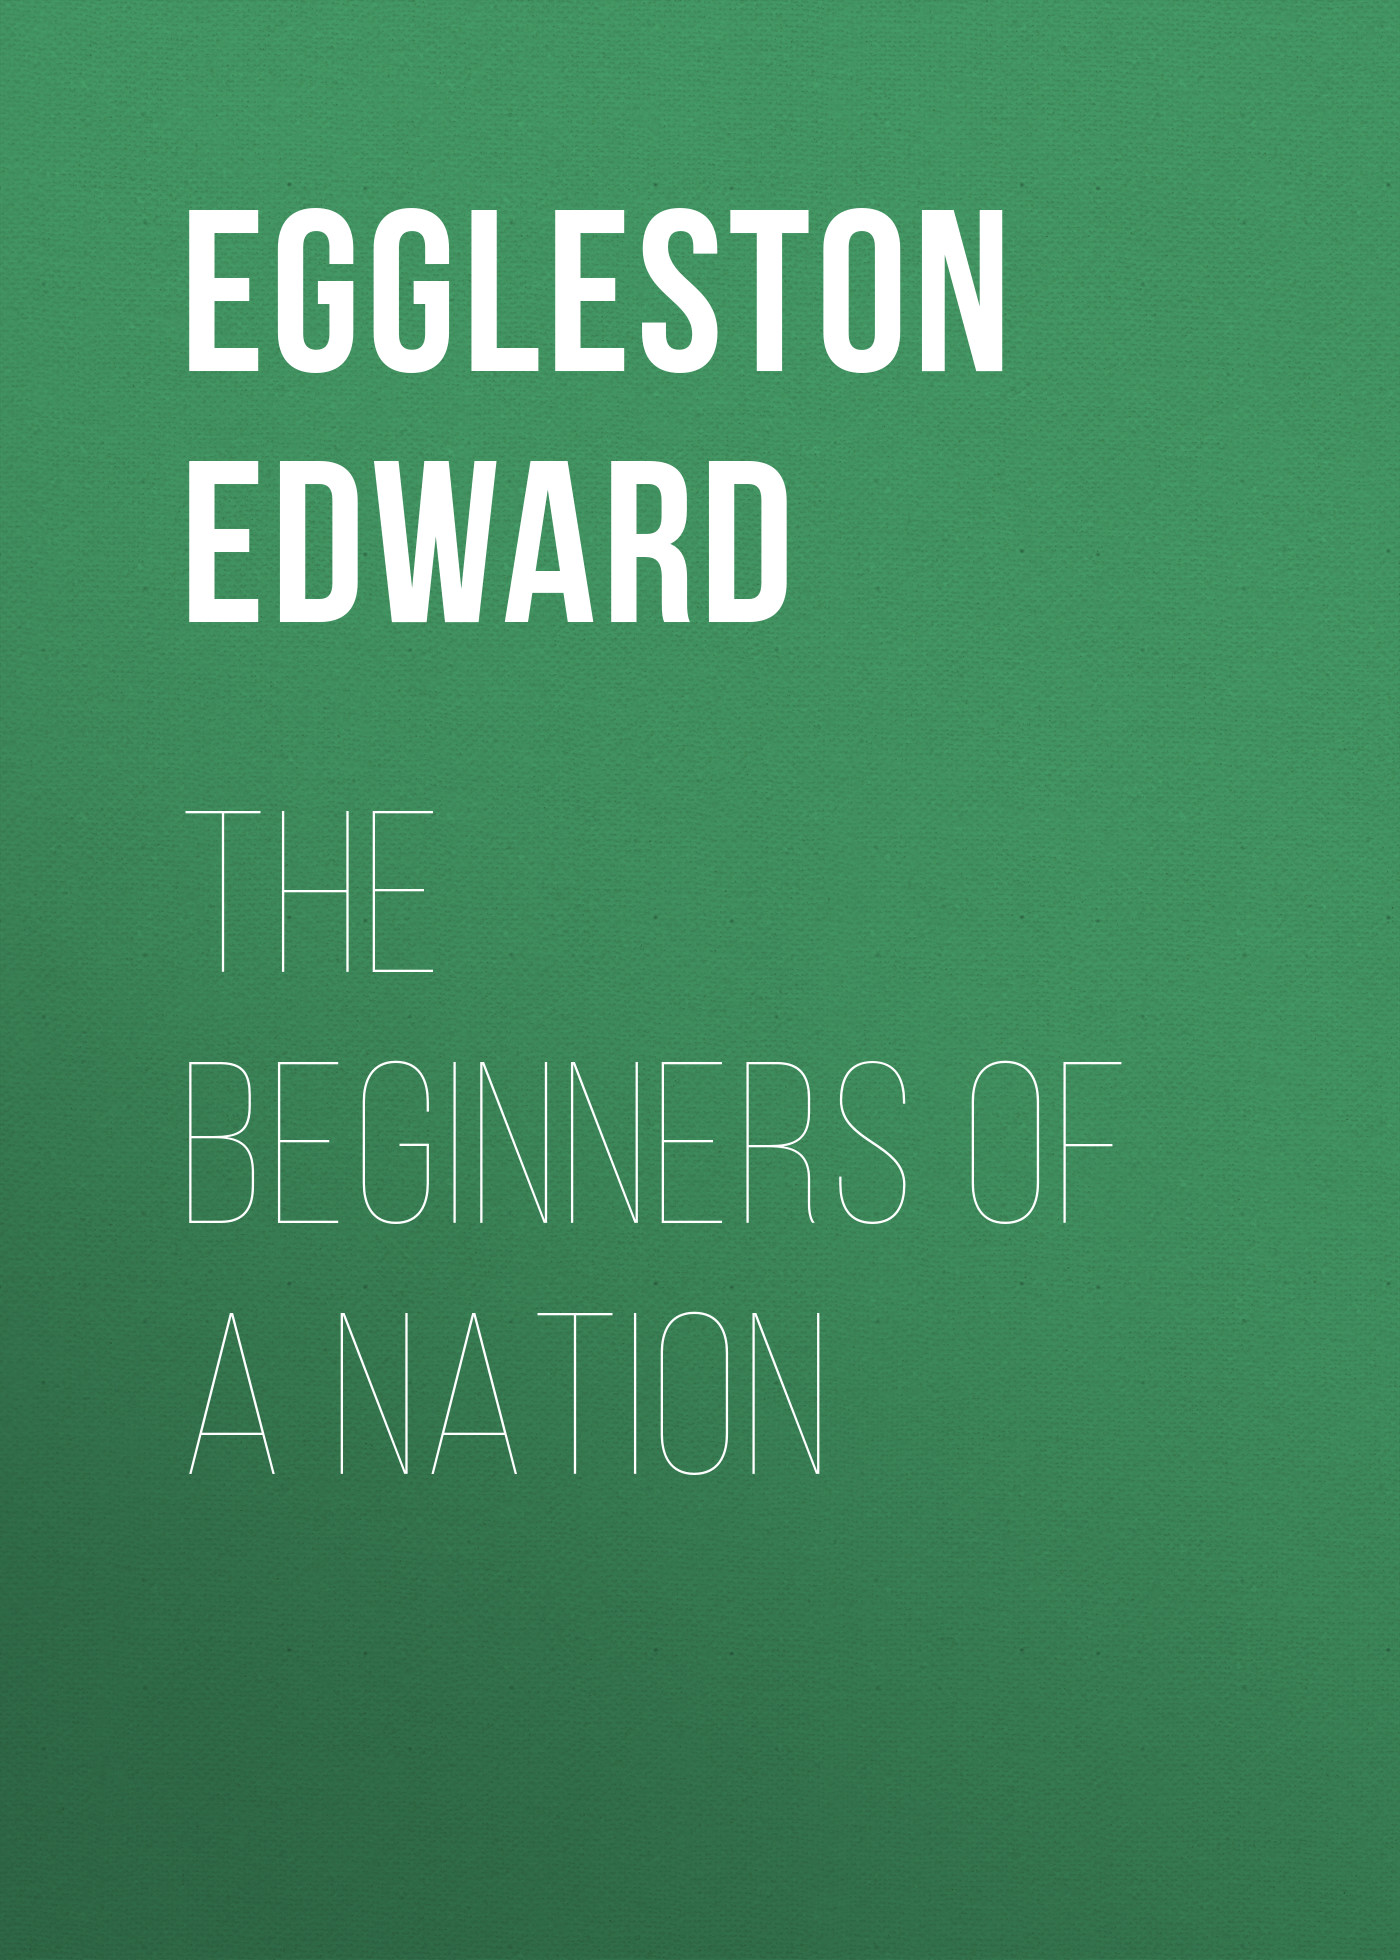 Eggleston Edward The Beginners of a Nation germany the memories of a nation